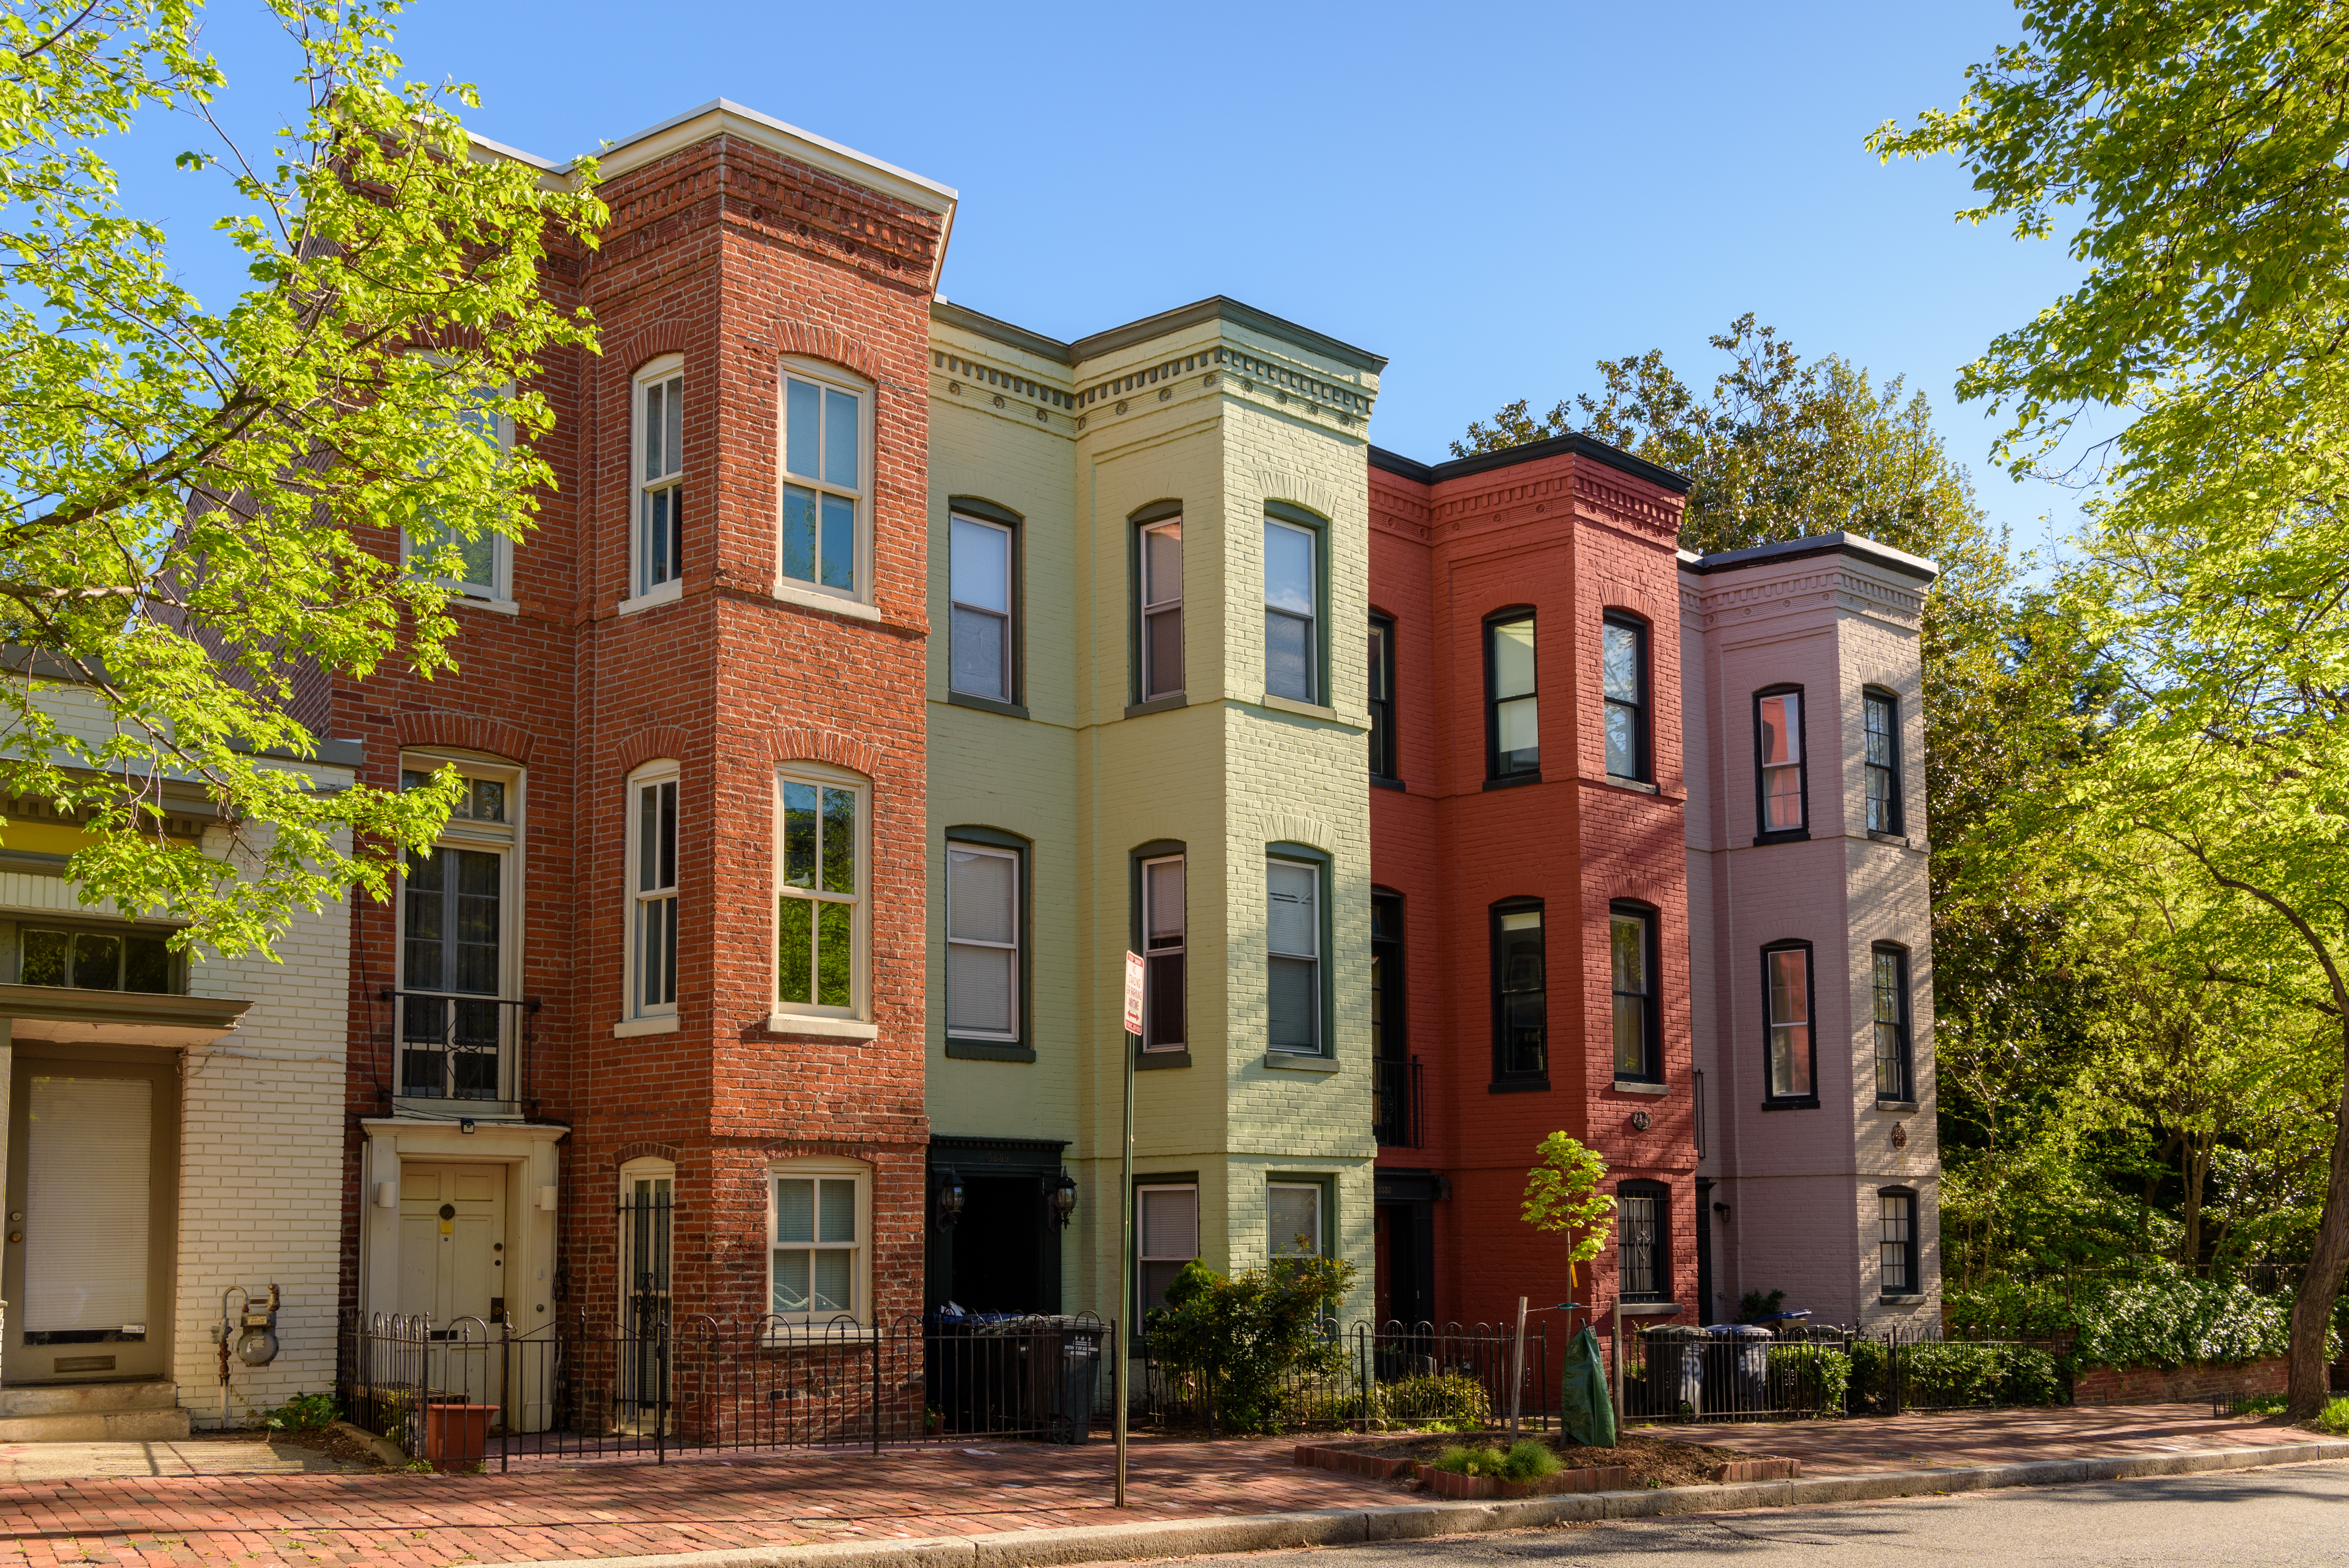 Median home sales price in the D.C. area sees October record